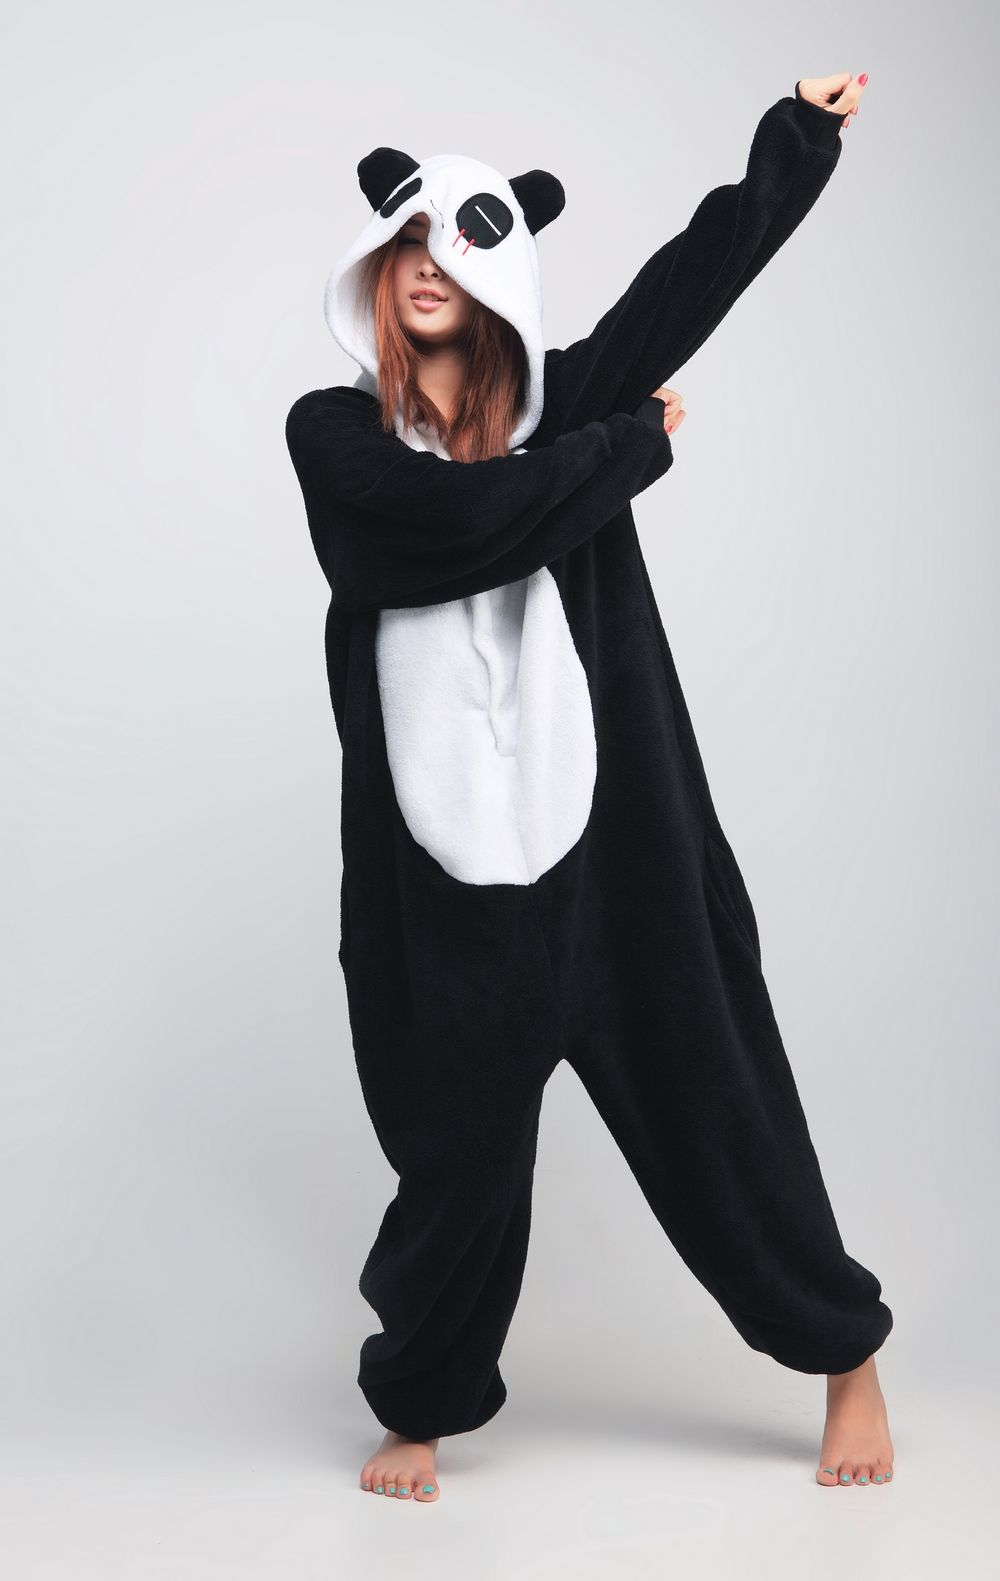 smashingprogrammsrj.tk is an distributor of authentic SAZAC kigurumi. SAZAC is Japan's number one kigurumi manufacturer, and the quality of SAZAC onesies is unmatched around the world. Unfortunately, this means that many other manufacturers will try (and fail!) to mimic SAZAC products.